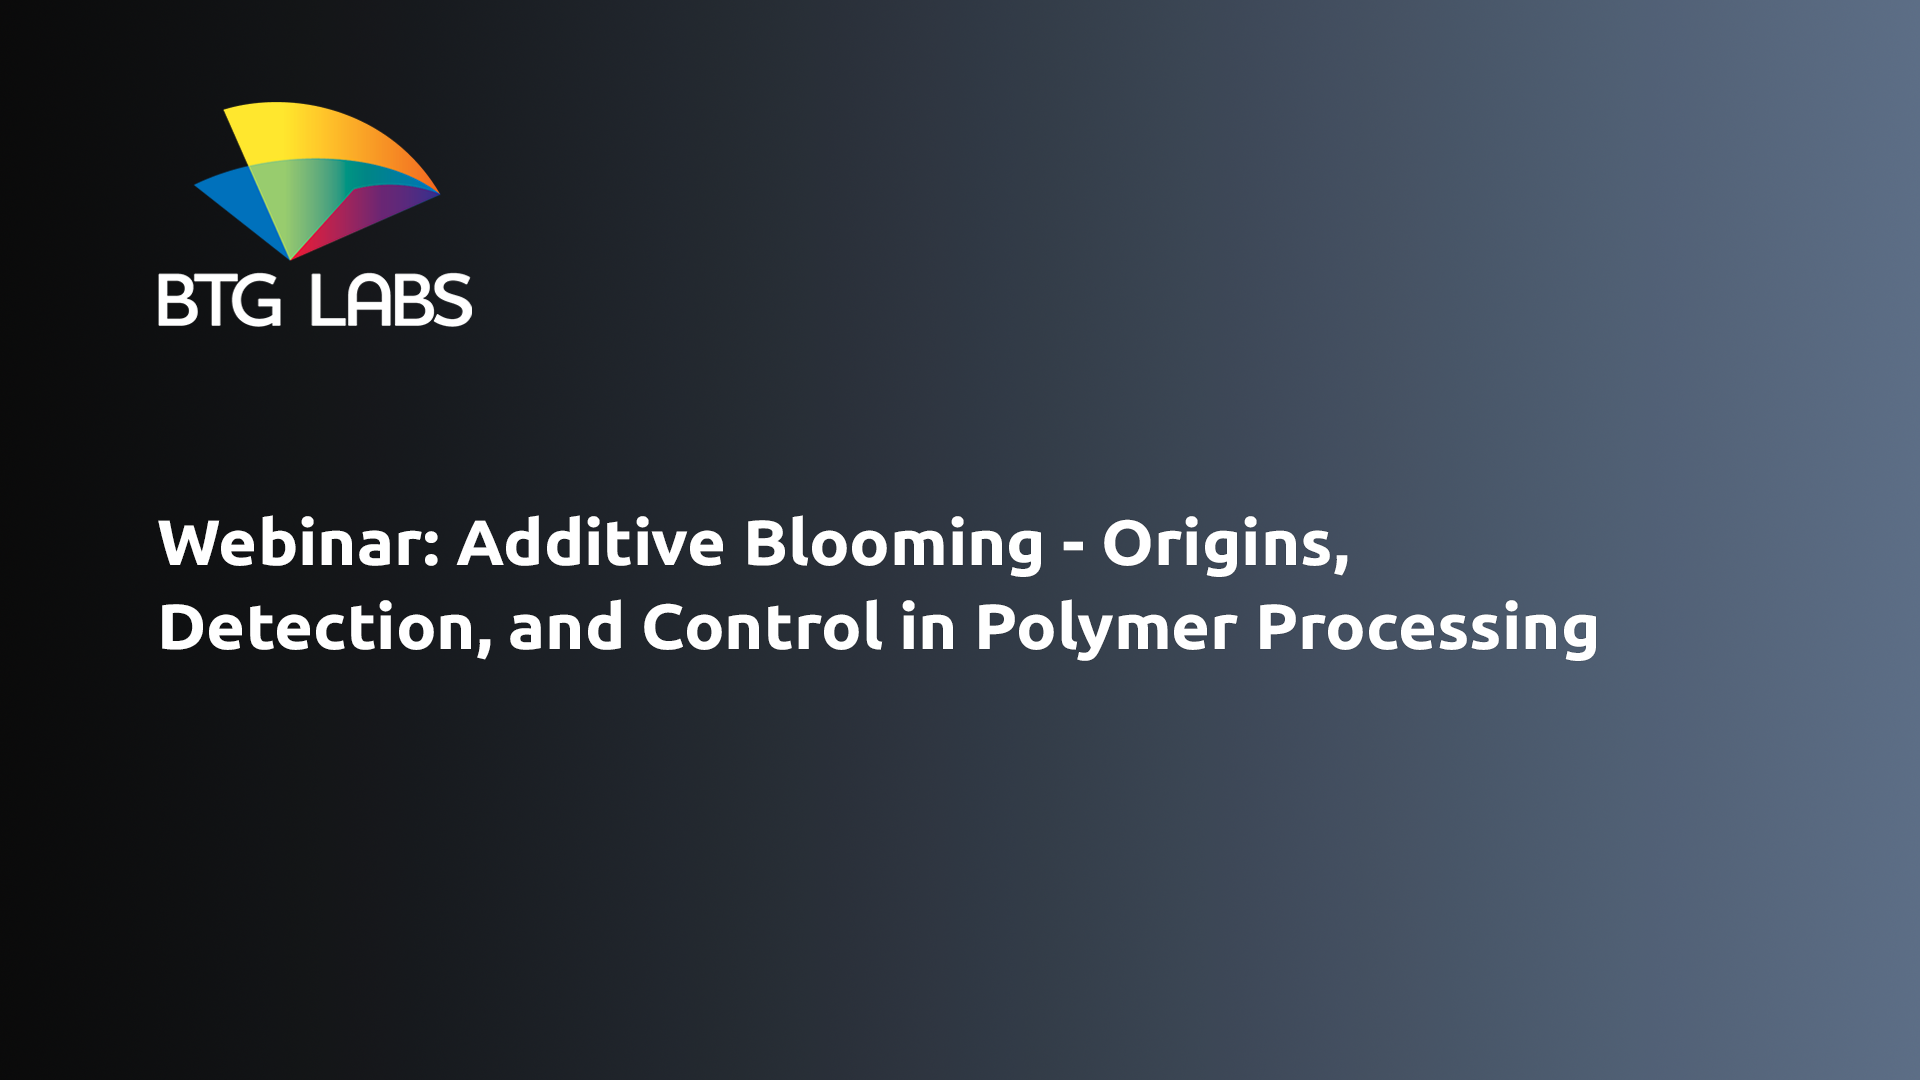 Additive Blooming_ Origins, Detection, and Control in Polymer Processing (1)